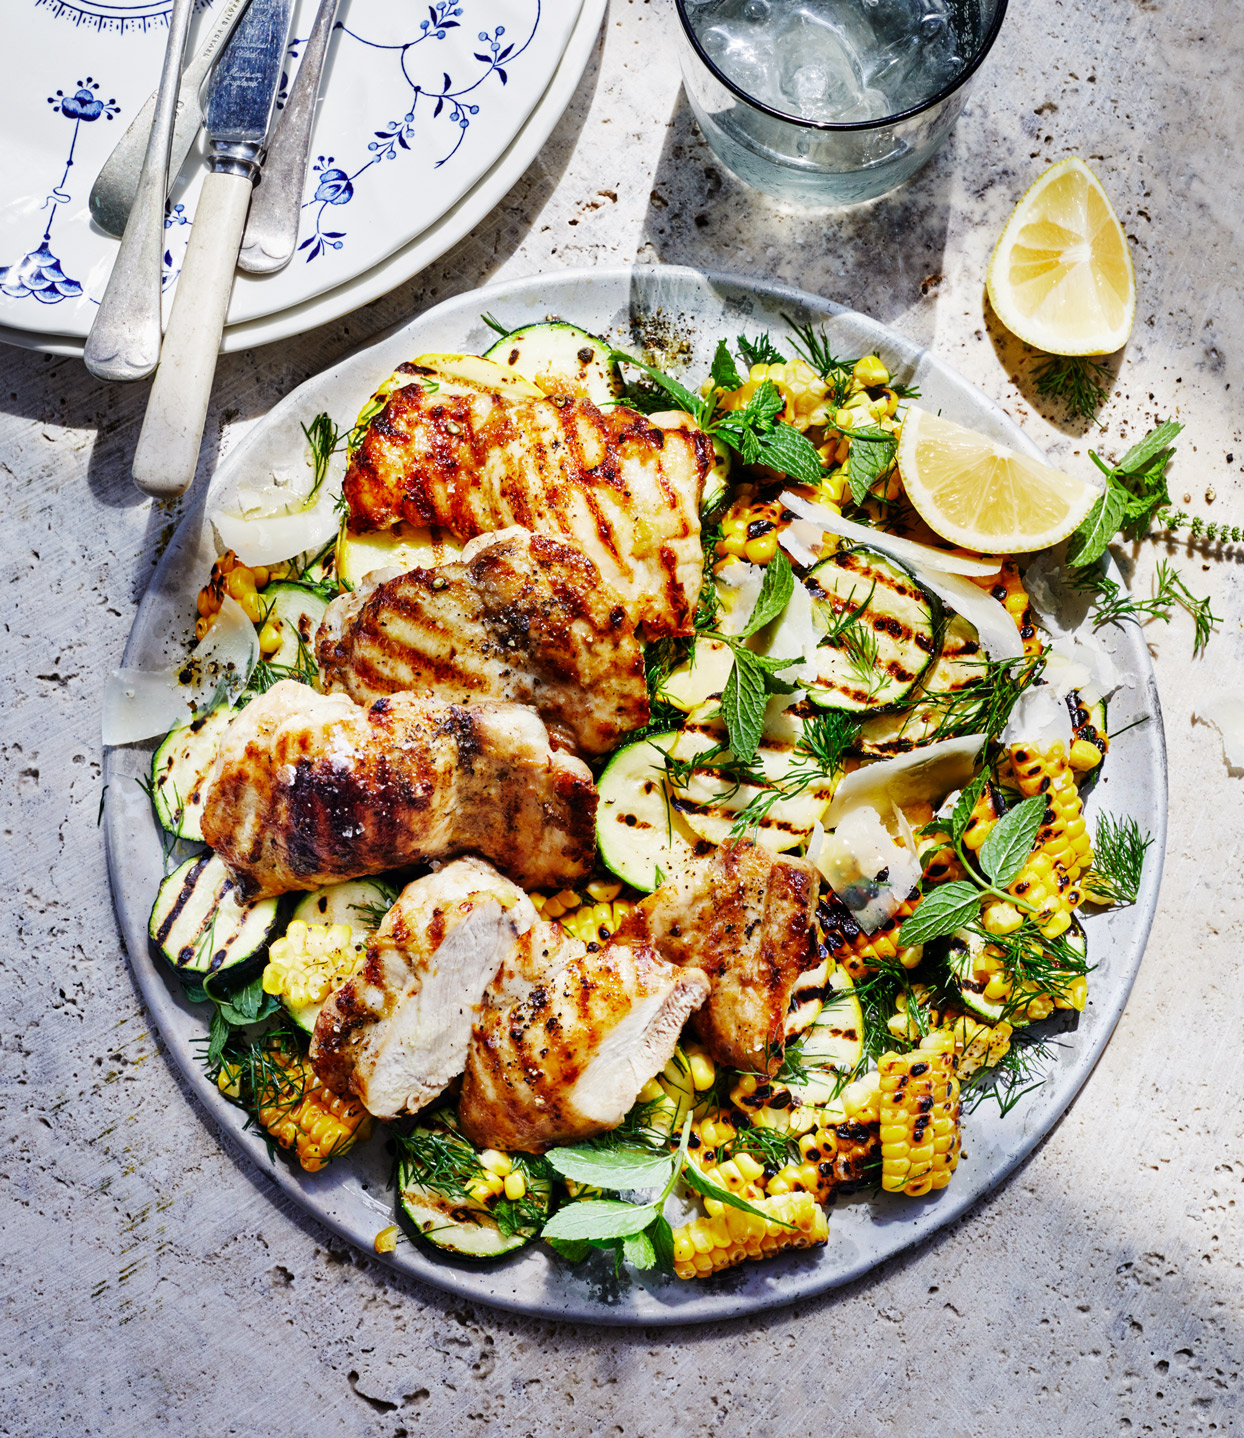 Grilled Chicken Thighs with Charred Corn and Summer Squash